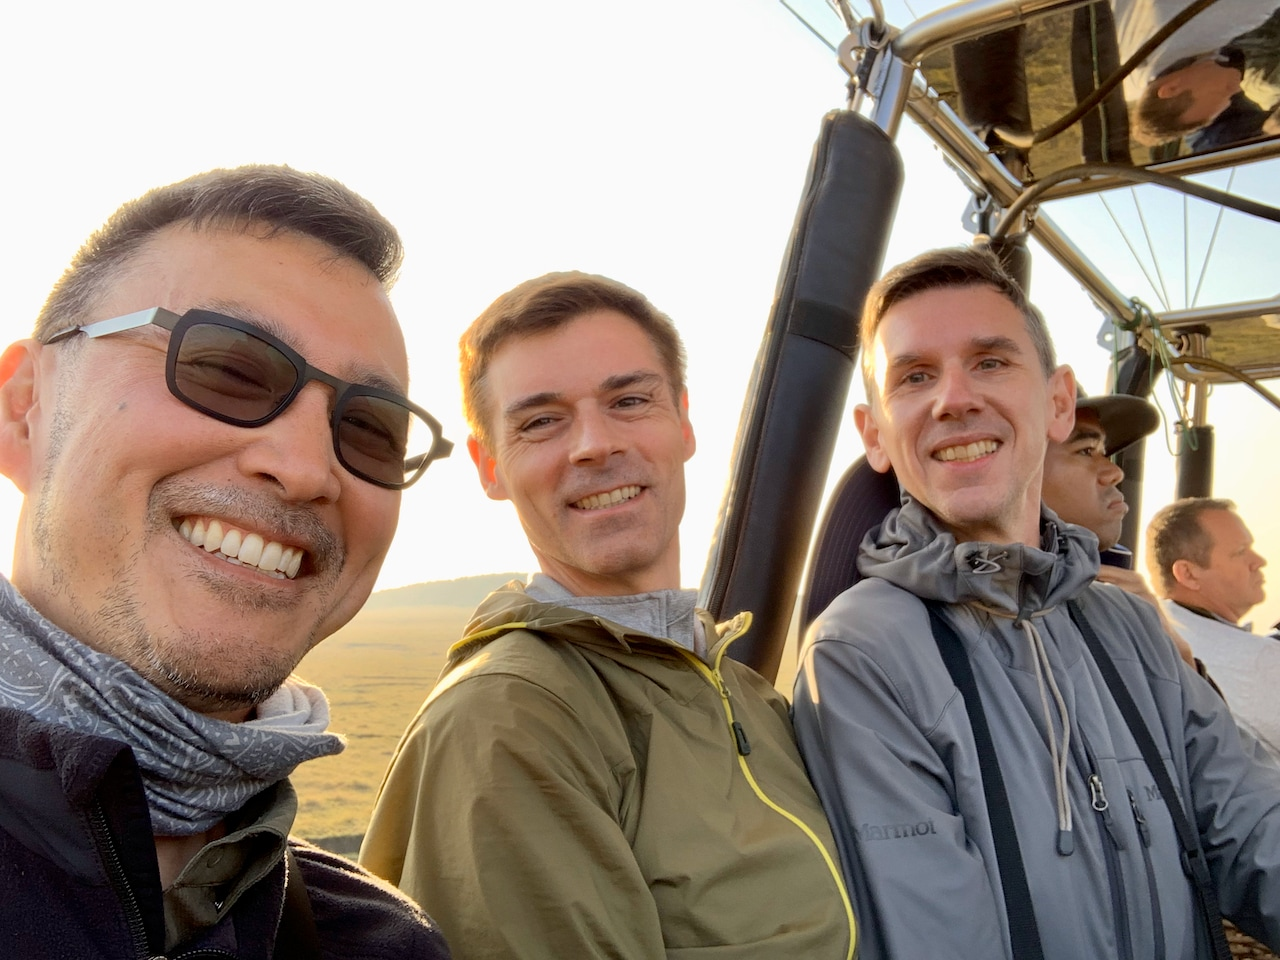 Three gay travellers prepare for a hot air balloon ride in Kenya.